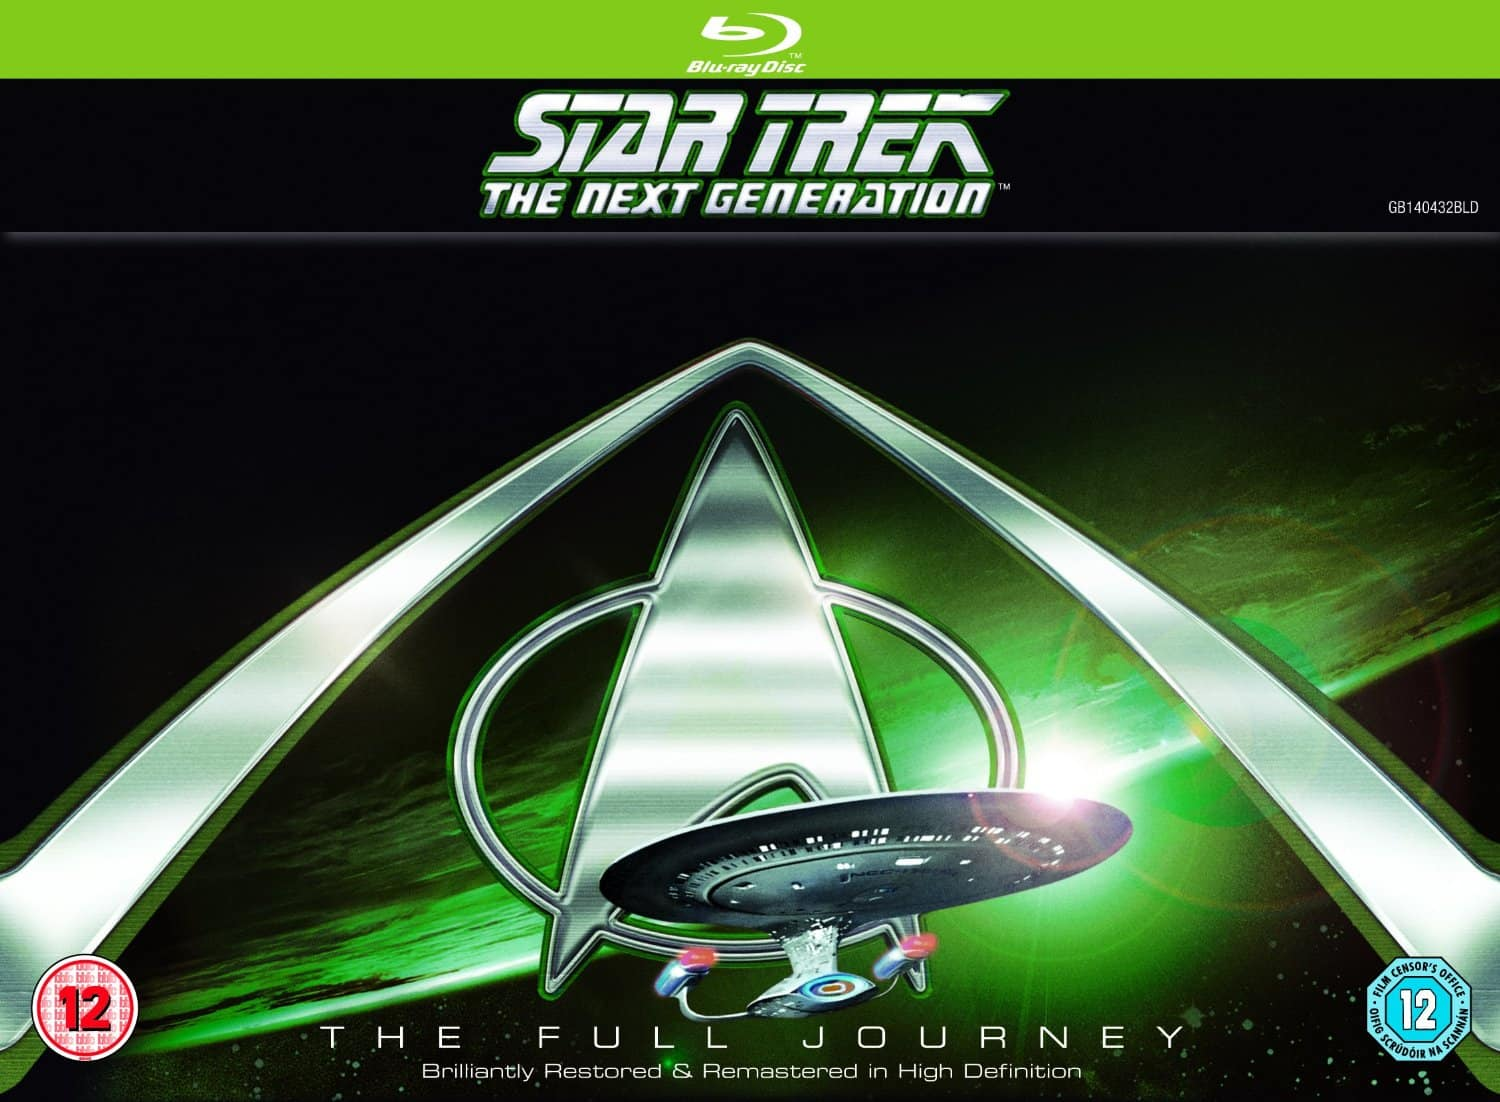 Star Trek: The Next Generation Complete Seasons 1-7 (Region Free Blu-ray) $67 Shipped